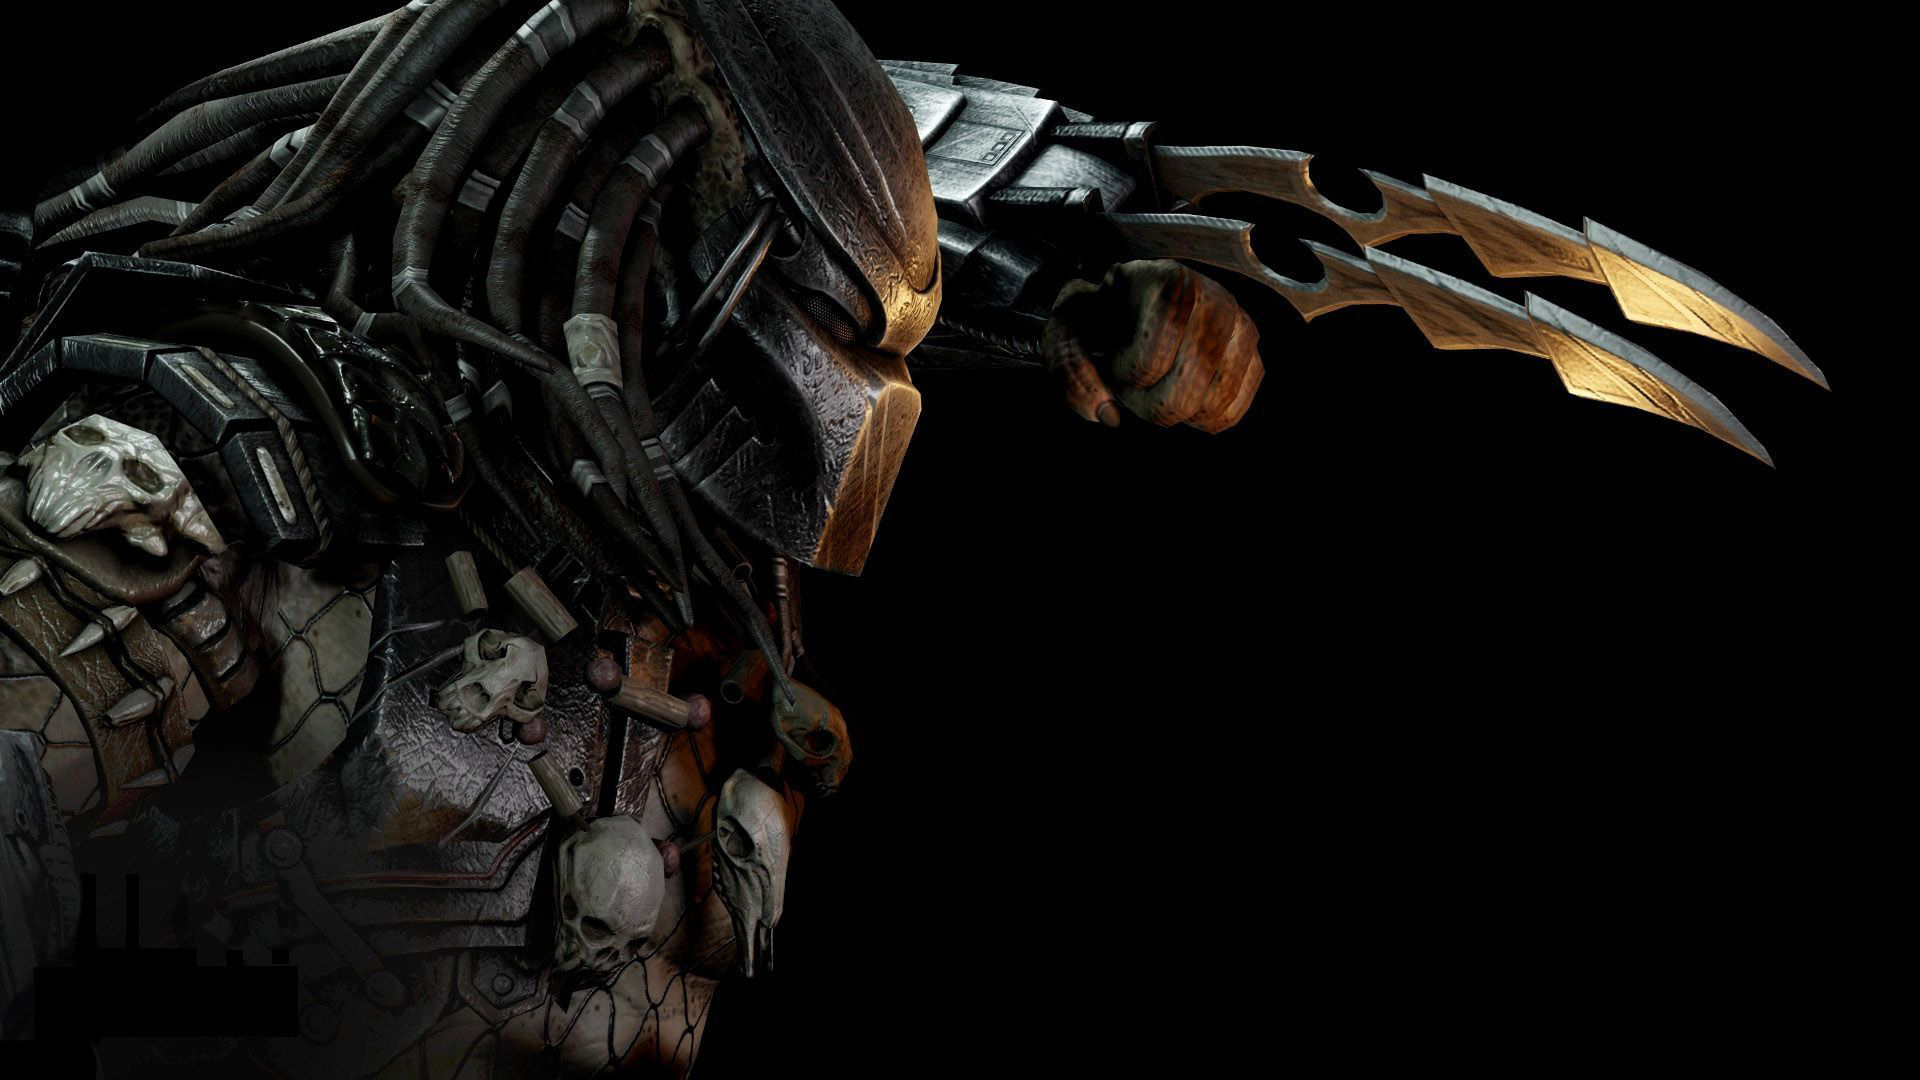 predator hd desktop background wallpaper image